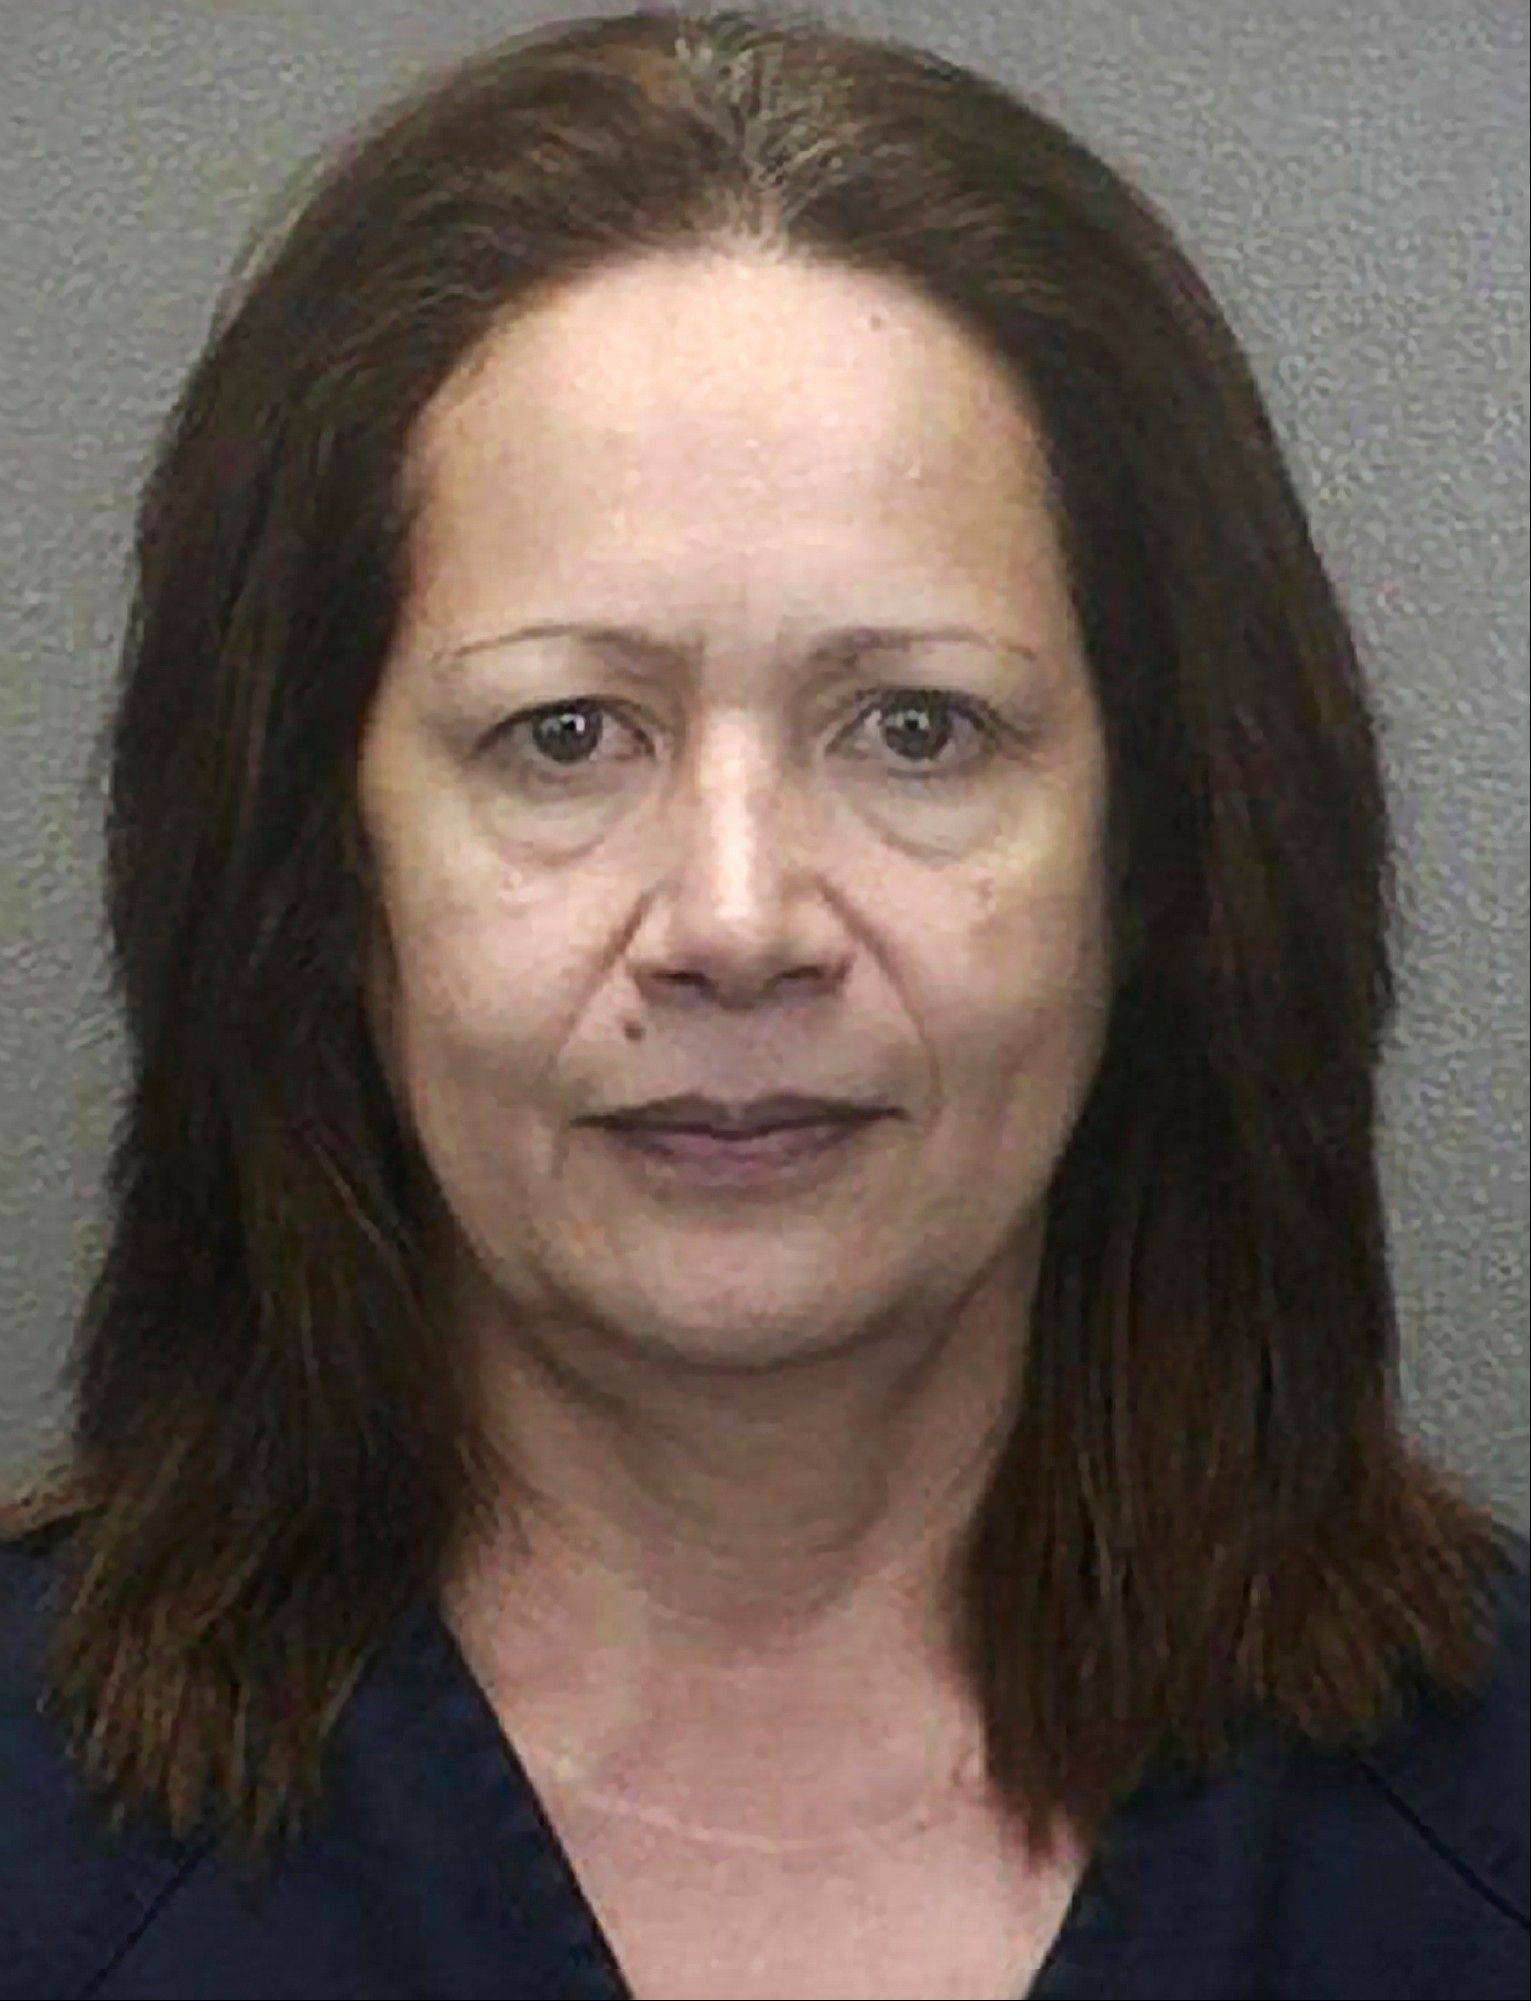 Narcy Novack, of Fort Lauderdale, Fla., is to be sentenced Monday at federal court in White Plains, N.Y., for her part in the murder of her millionaire husband and his mother in 2009. She faces decades, if not life, in prison.